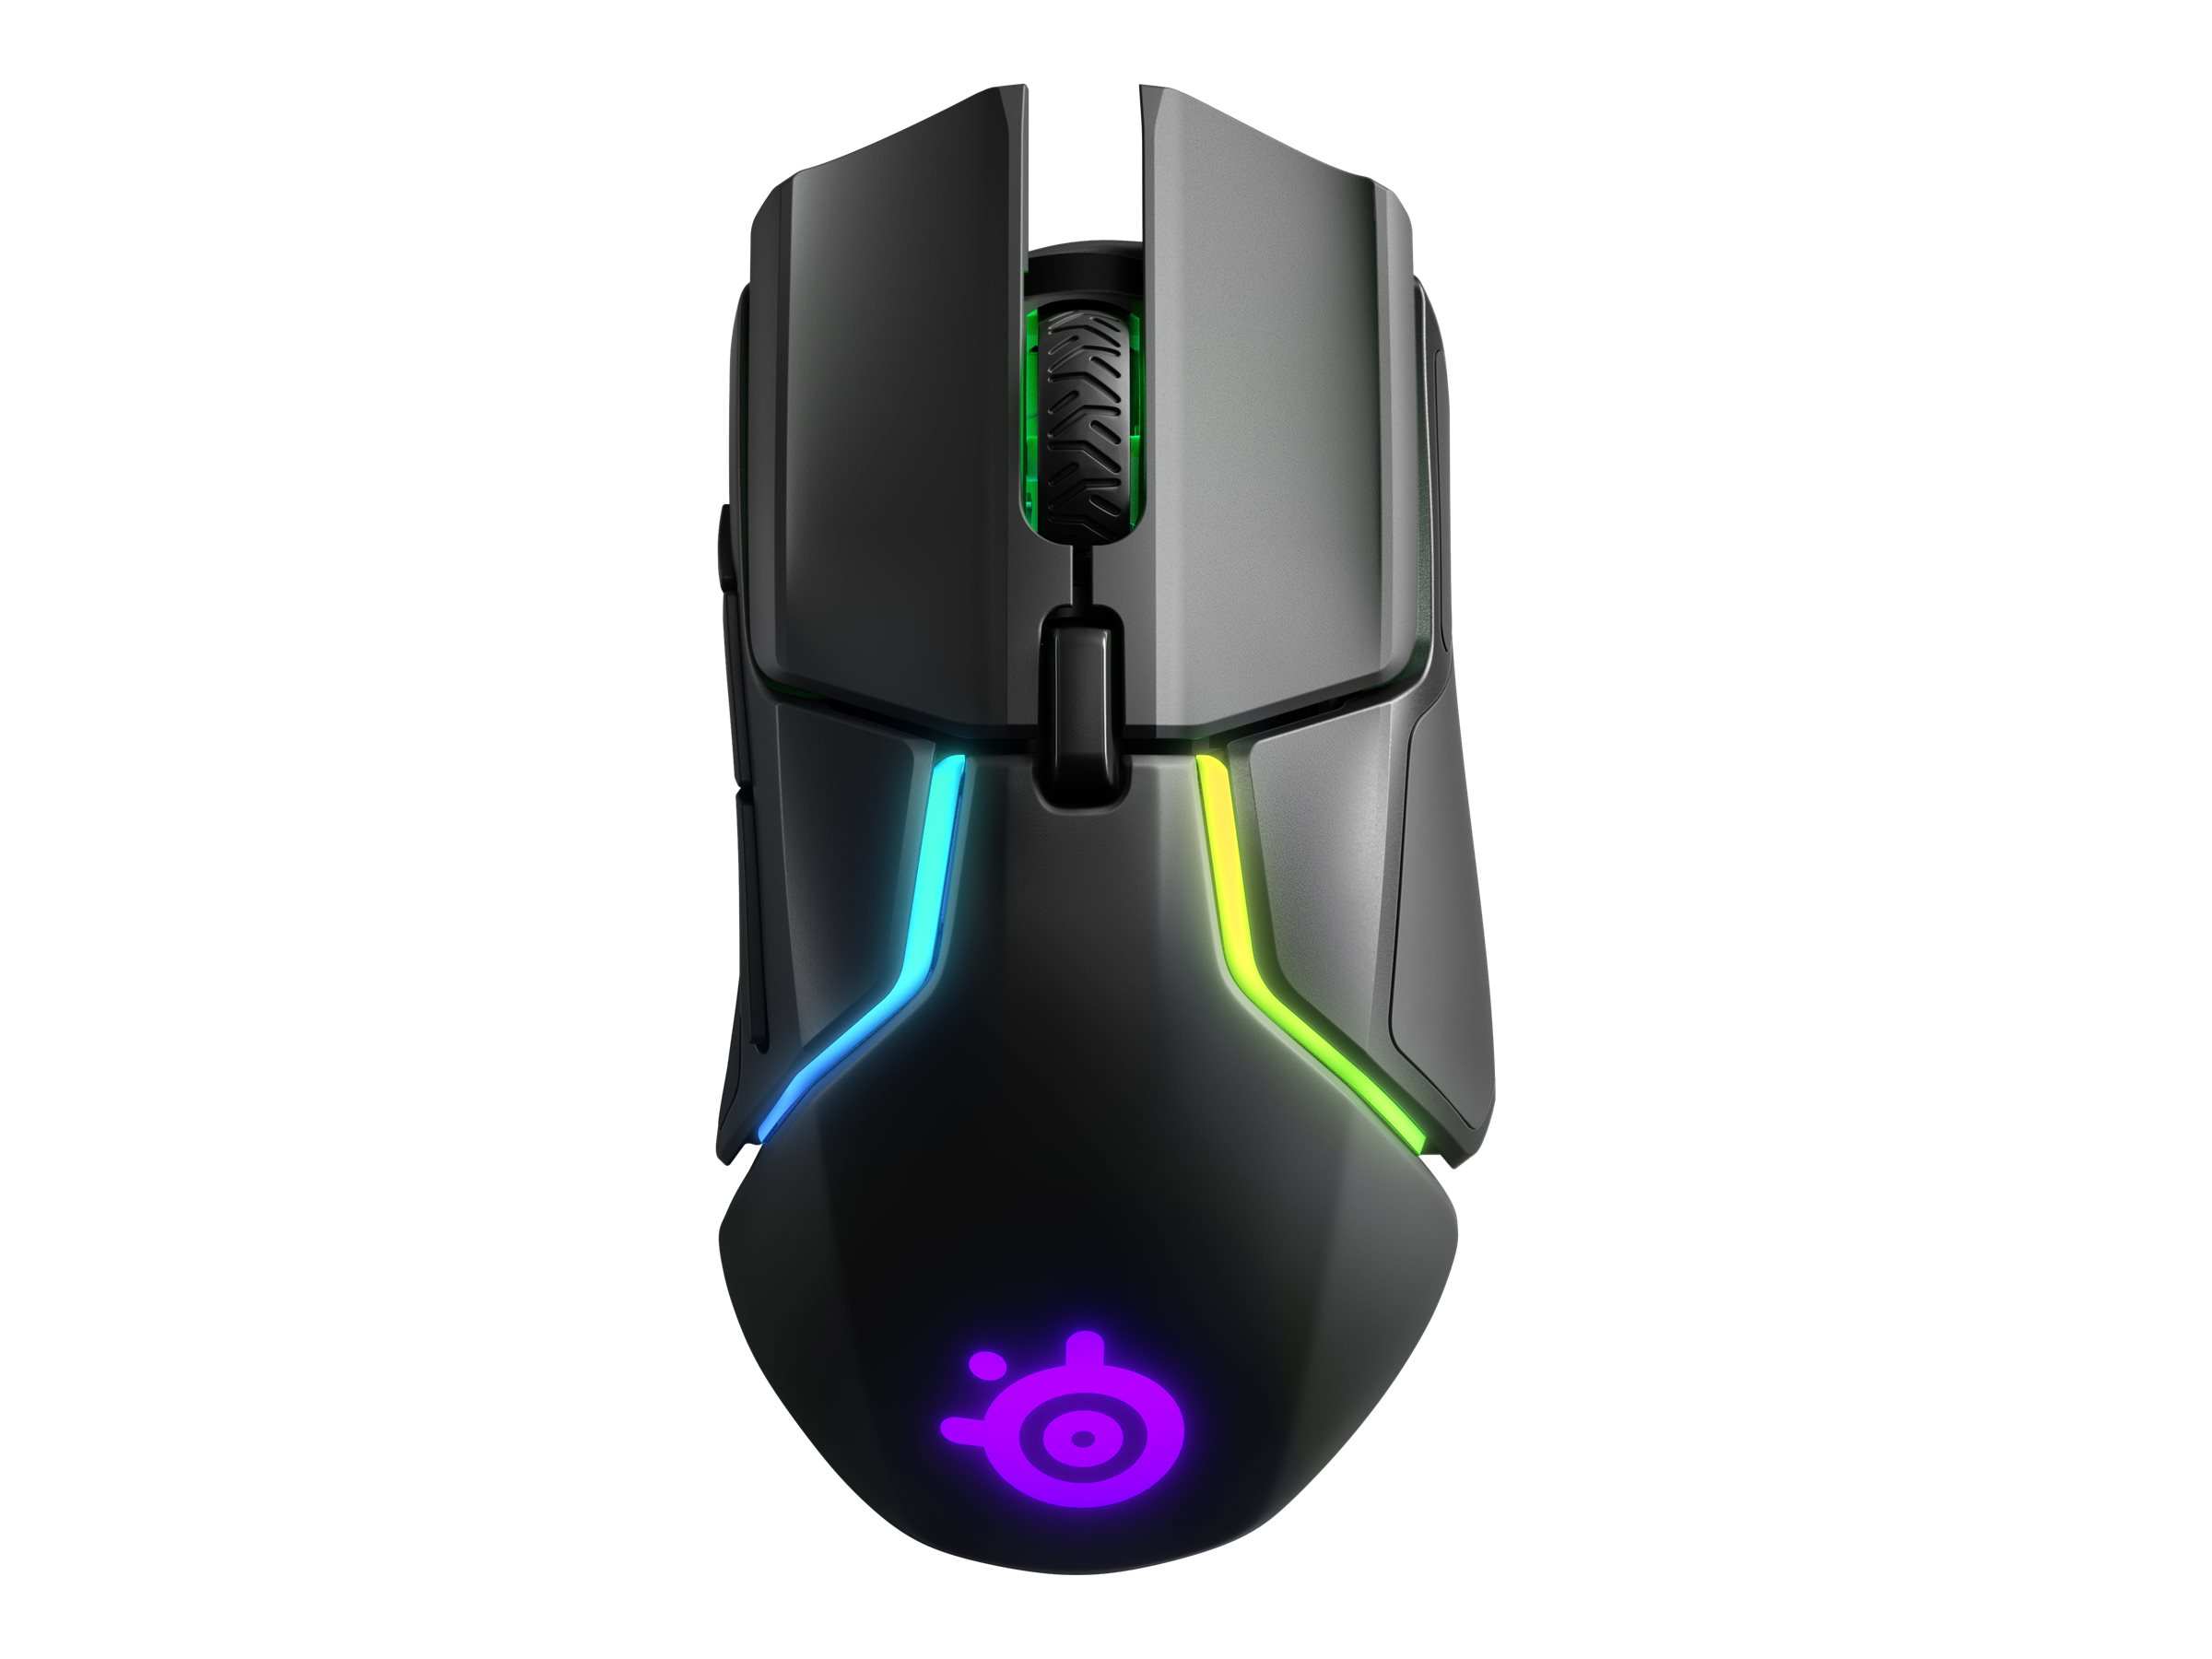 SteelSeries Rival 650 - mouse - USB, 2.4 GHz